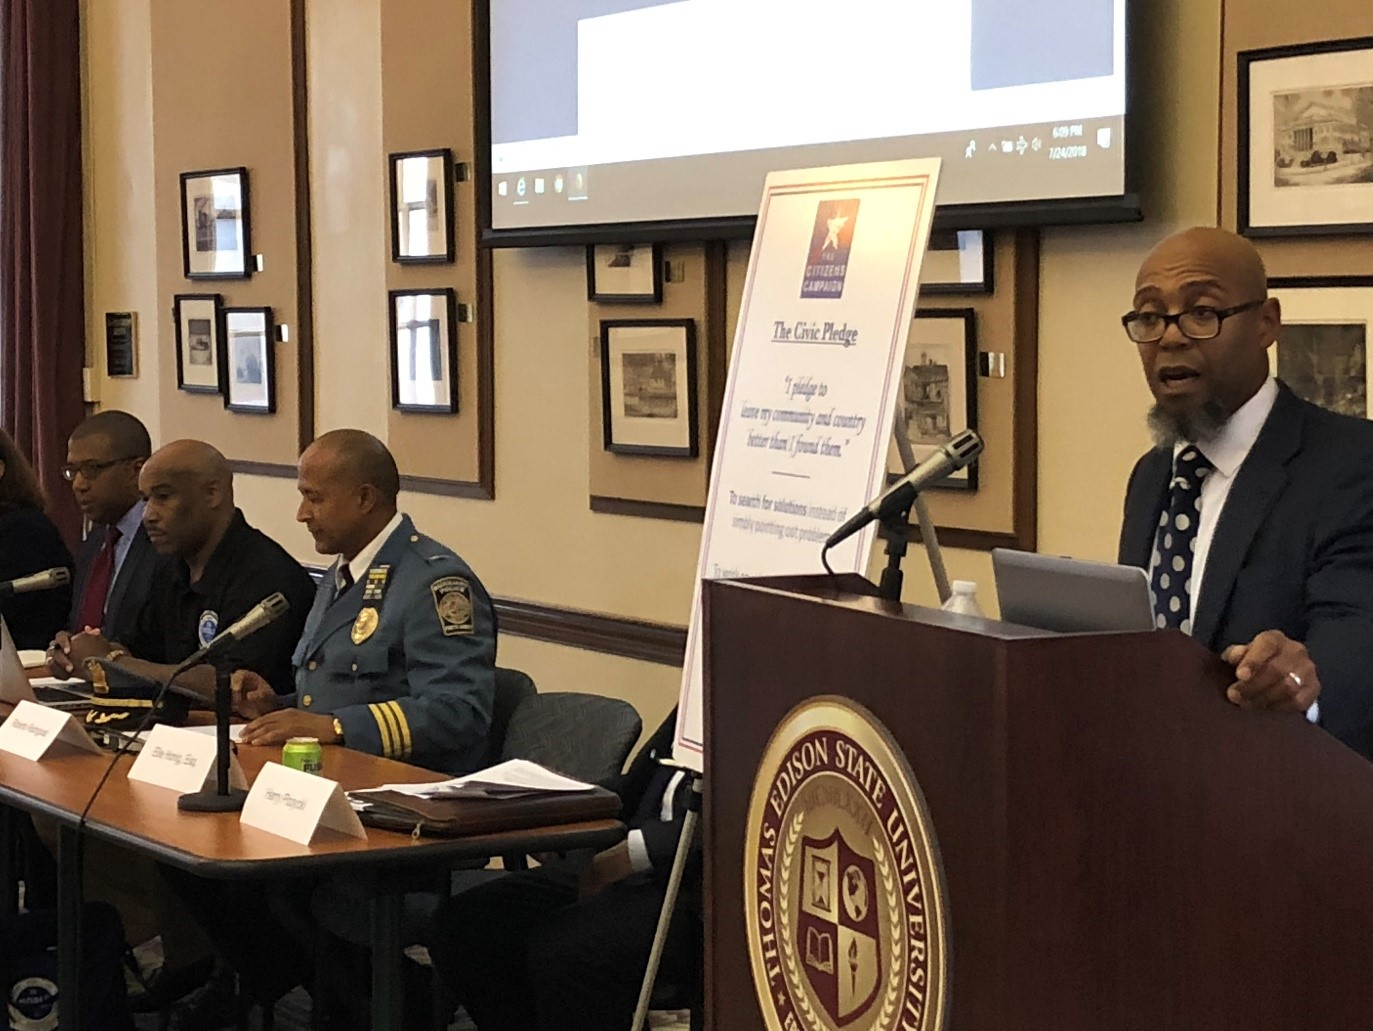 Solutions Forum on police/community relations at Thomas Edison State University